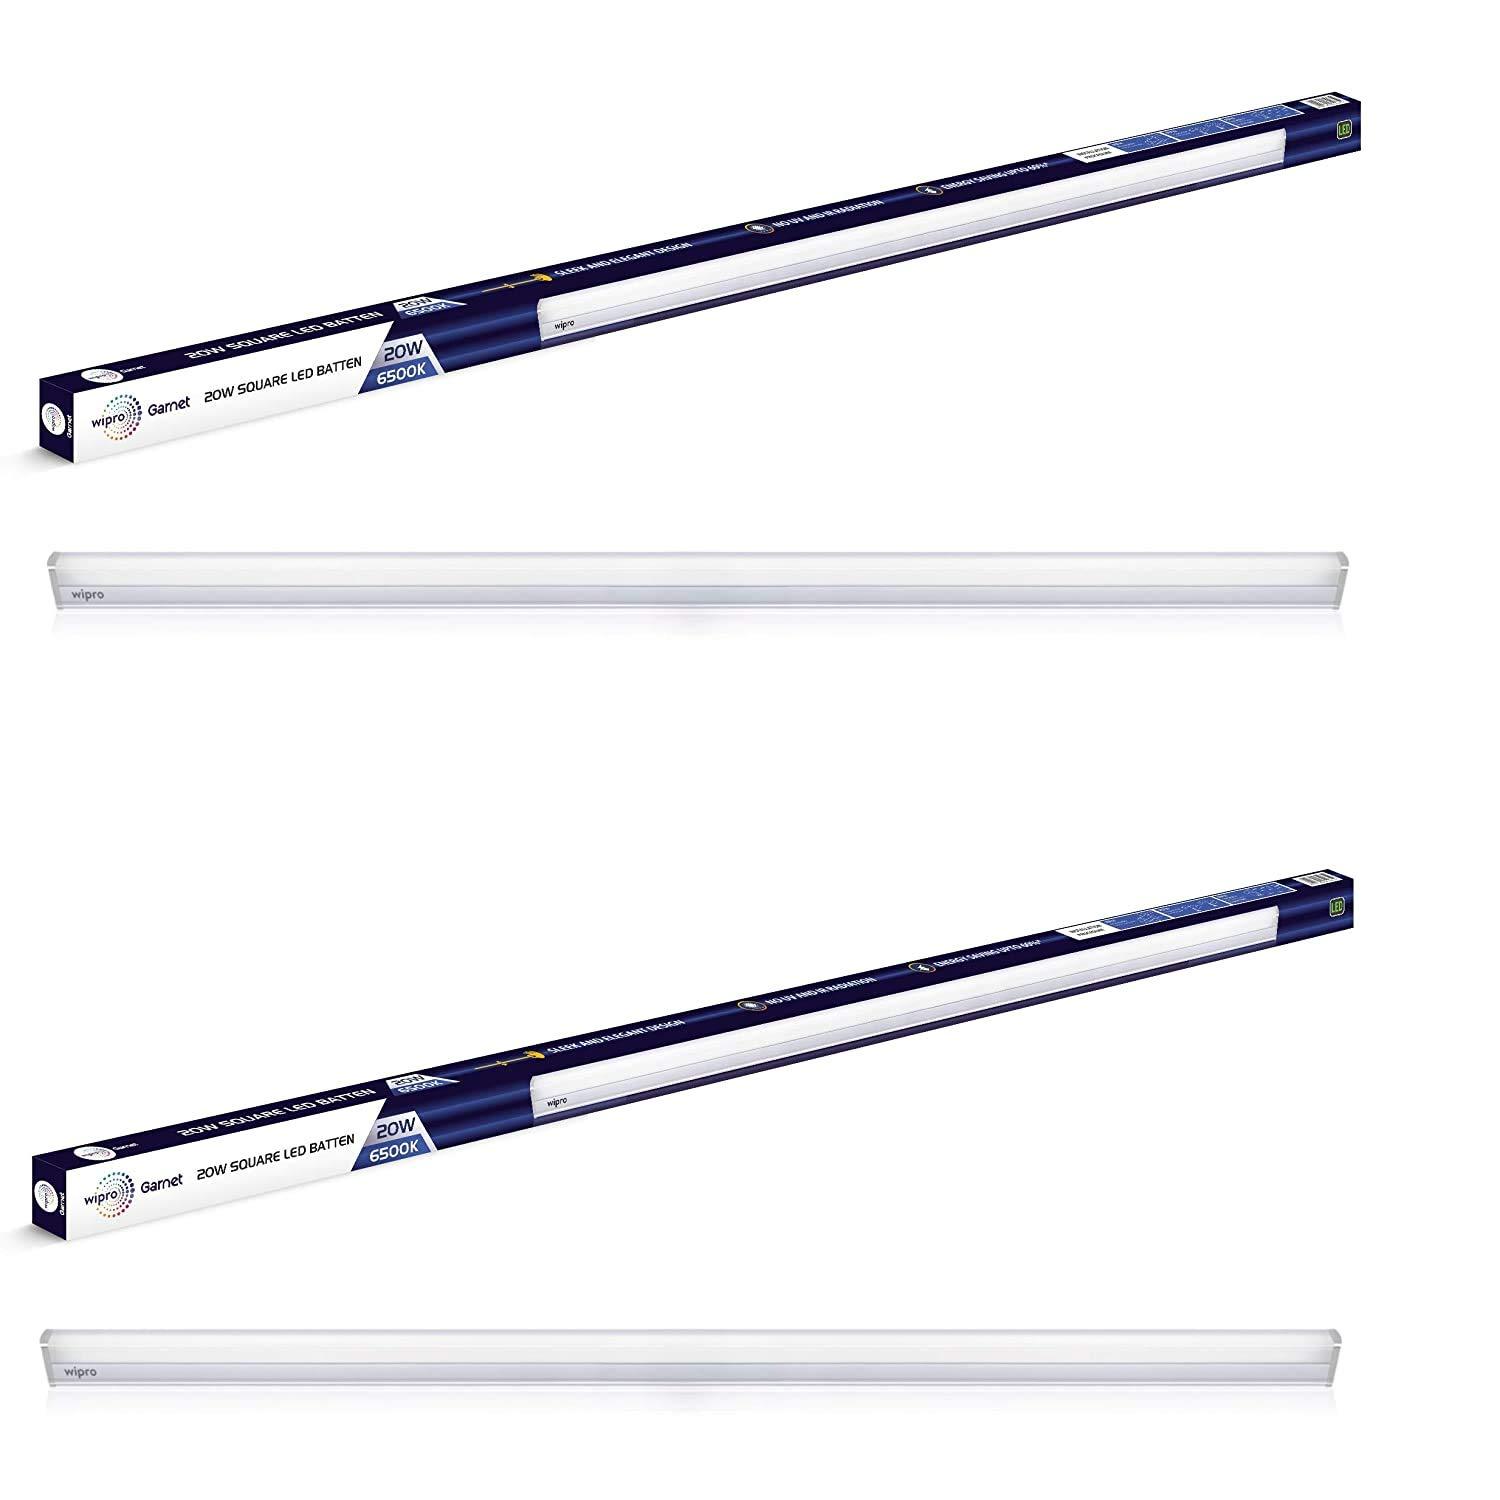 Wipro Garnet 20-Watt LED LED Batten (Pack of 2, White) (D532065_2)